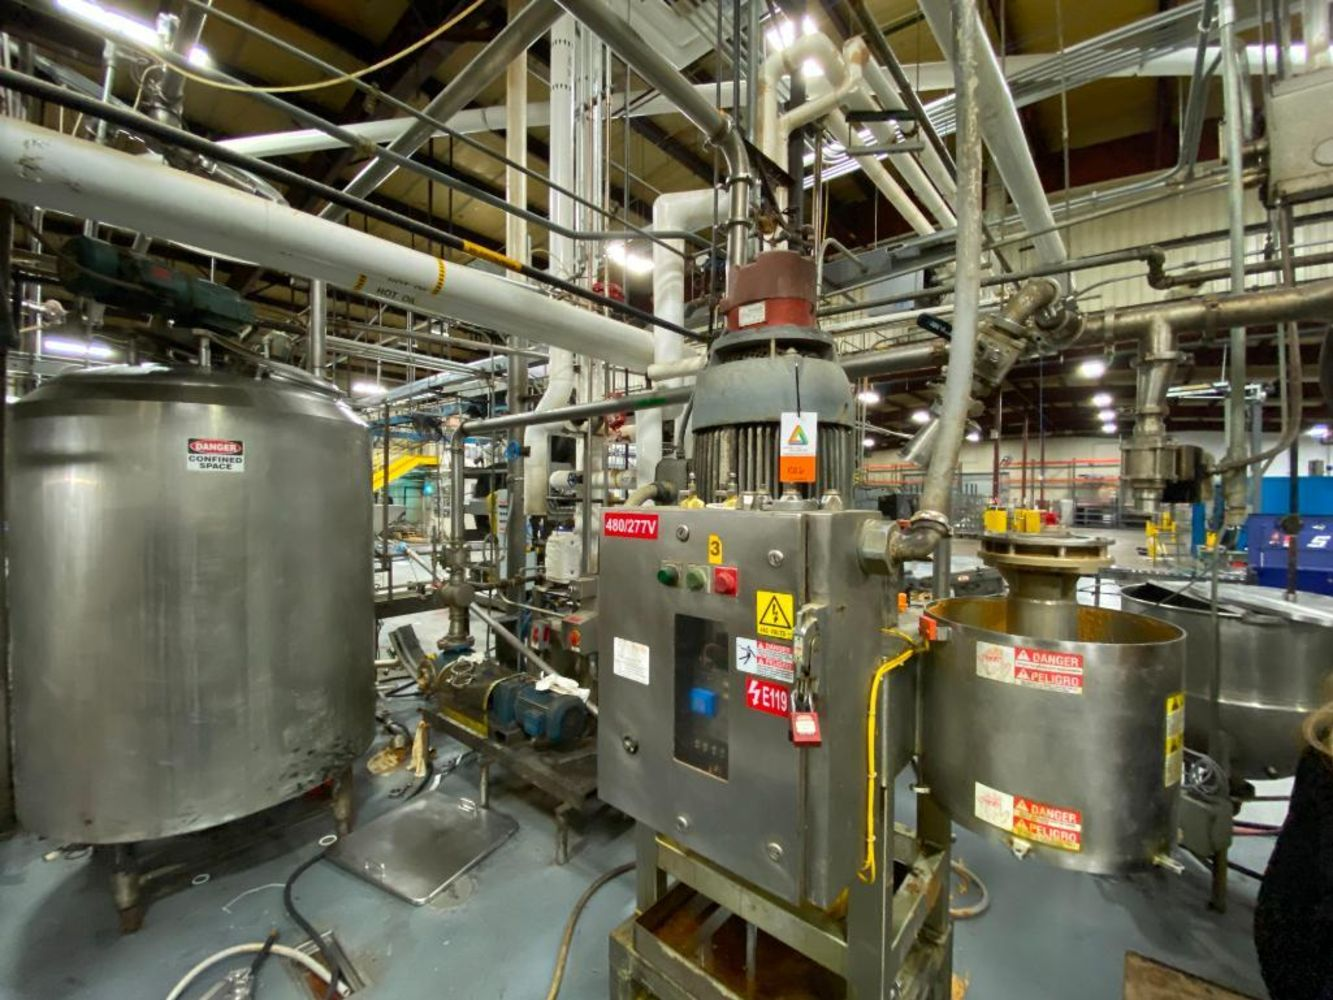 Peanut Butter Manufacturing and Packaging Equipment - Surplus of Golden Boy Nut Corporation